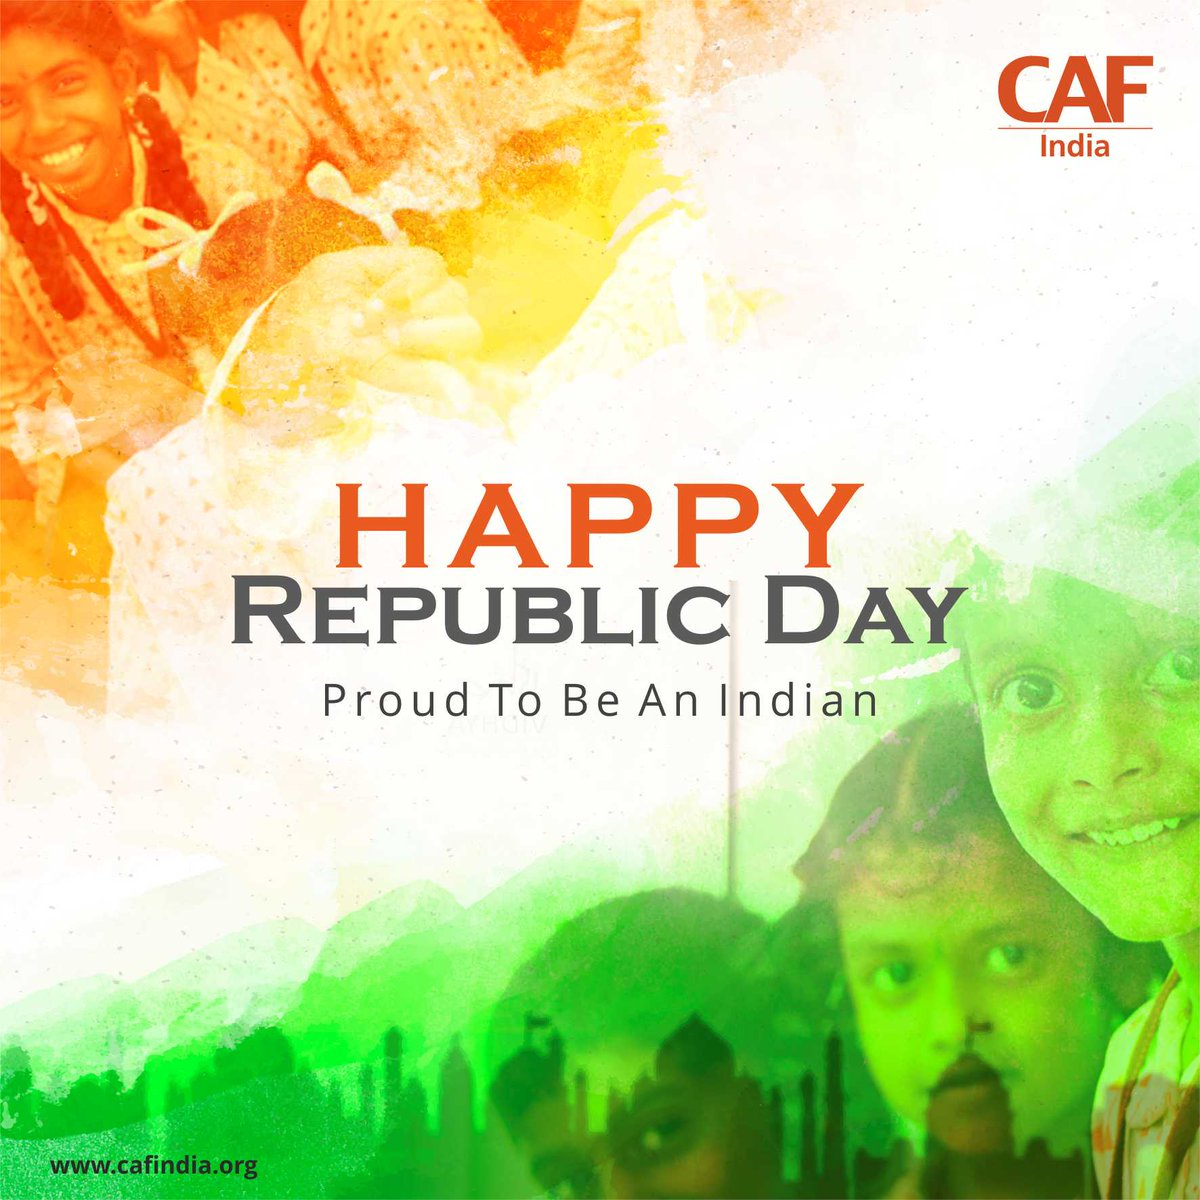 CAF India wishes all a Happy Republic Day. #HappyRepublicDay2019 #RepublicDayWishes #ProudtobeIndia #70thRepublicDay #republicdayindia